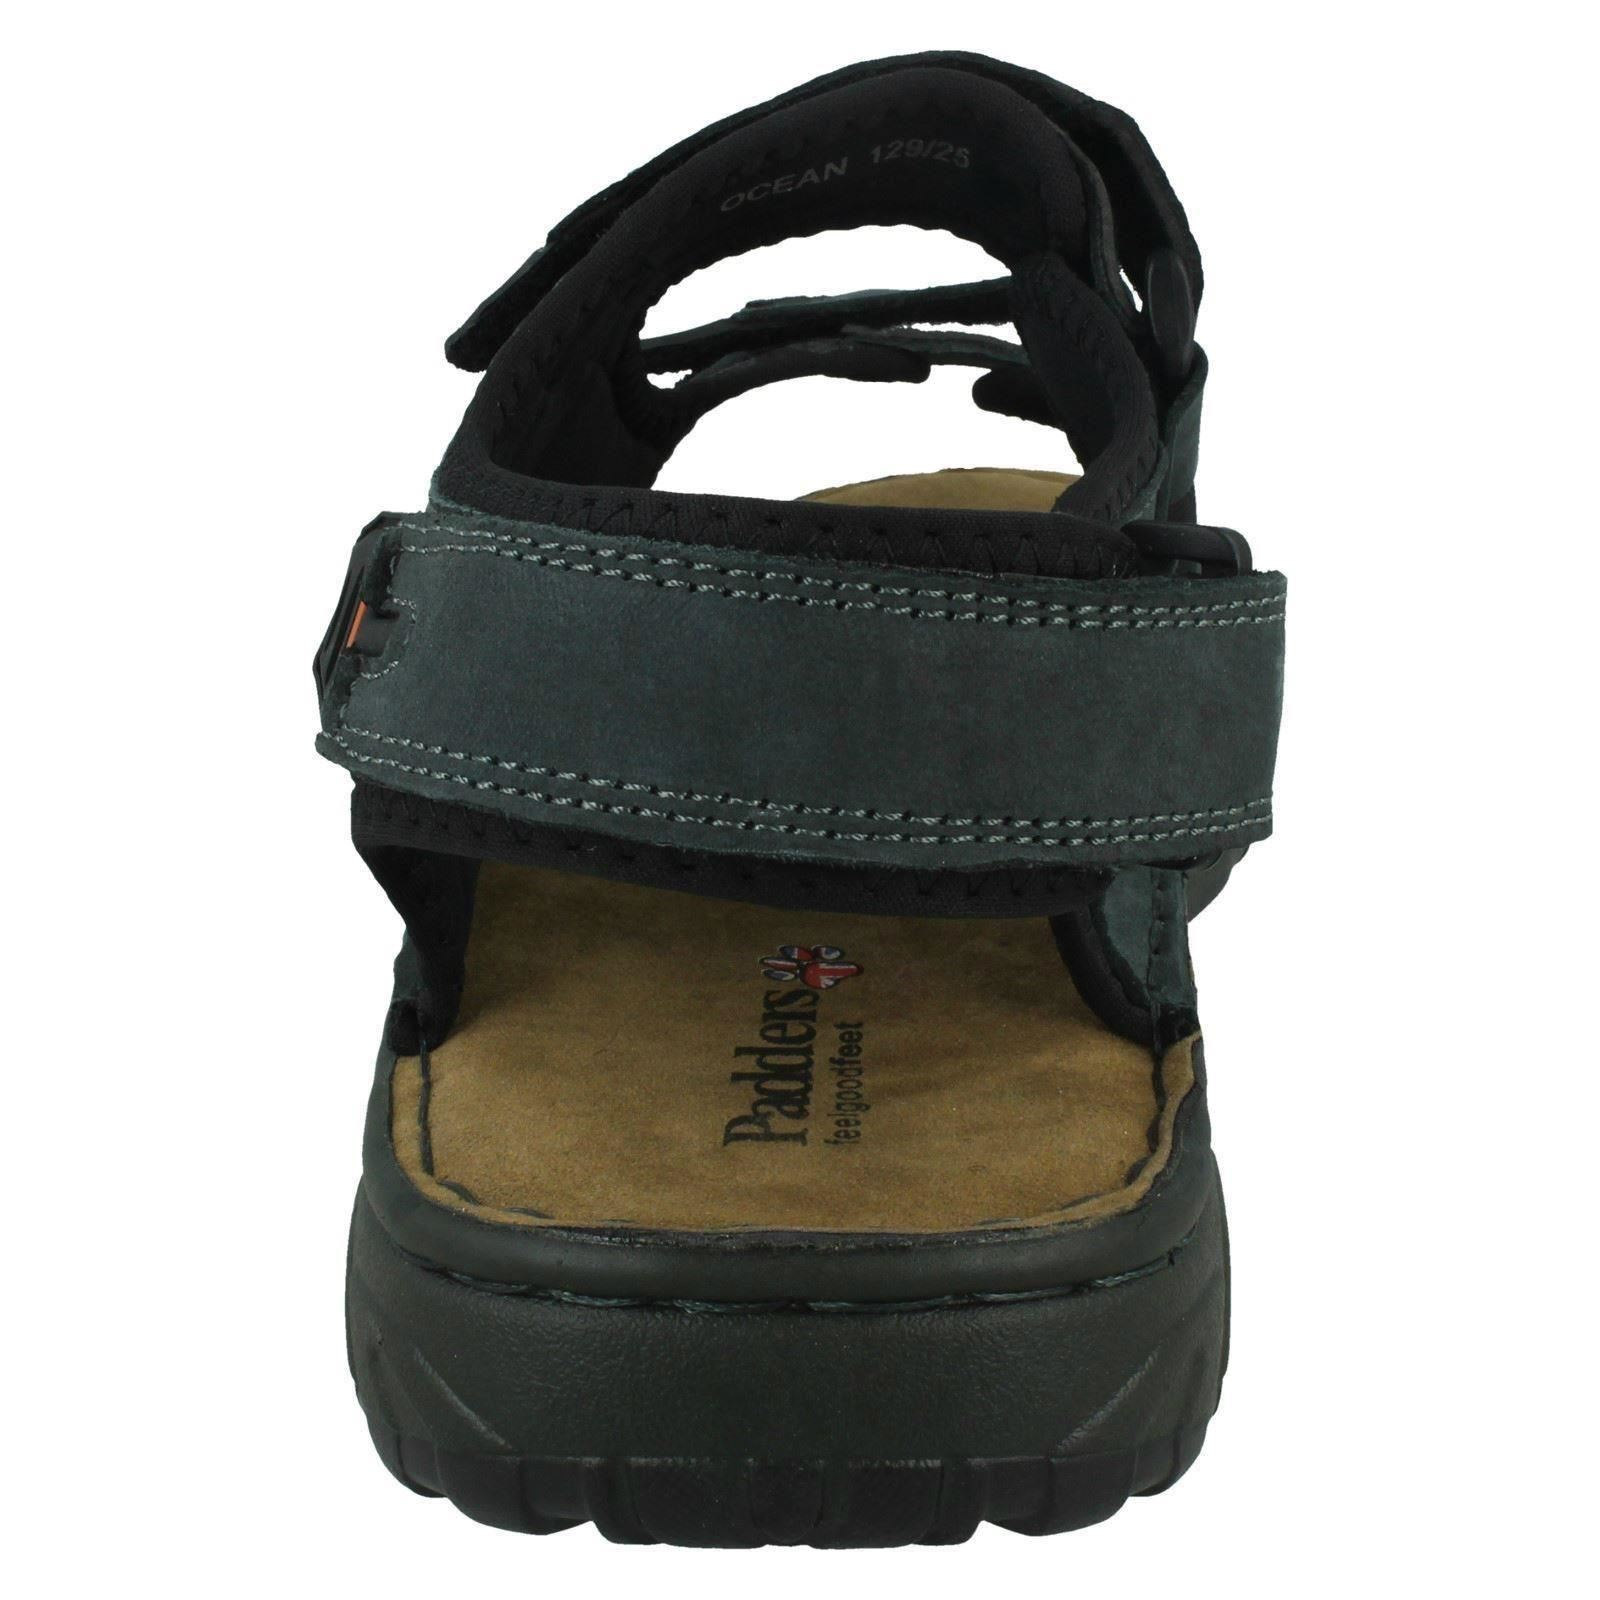 Mens Padders Casual Strapped Summer Sandals Ocean